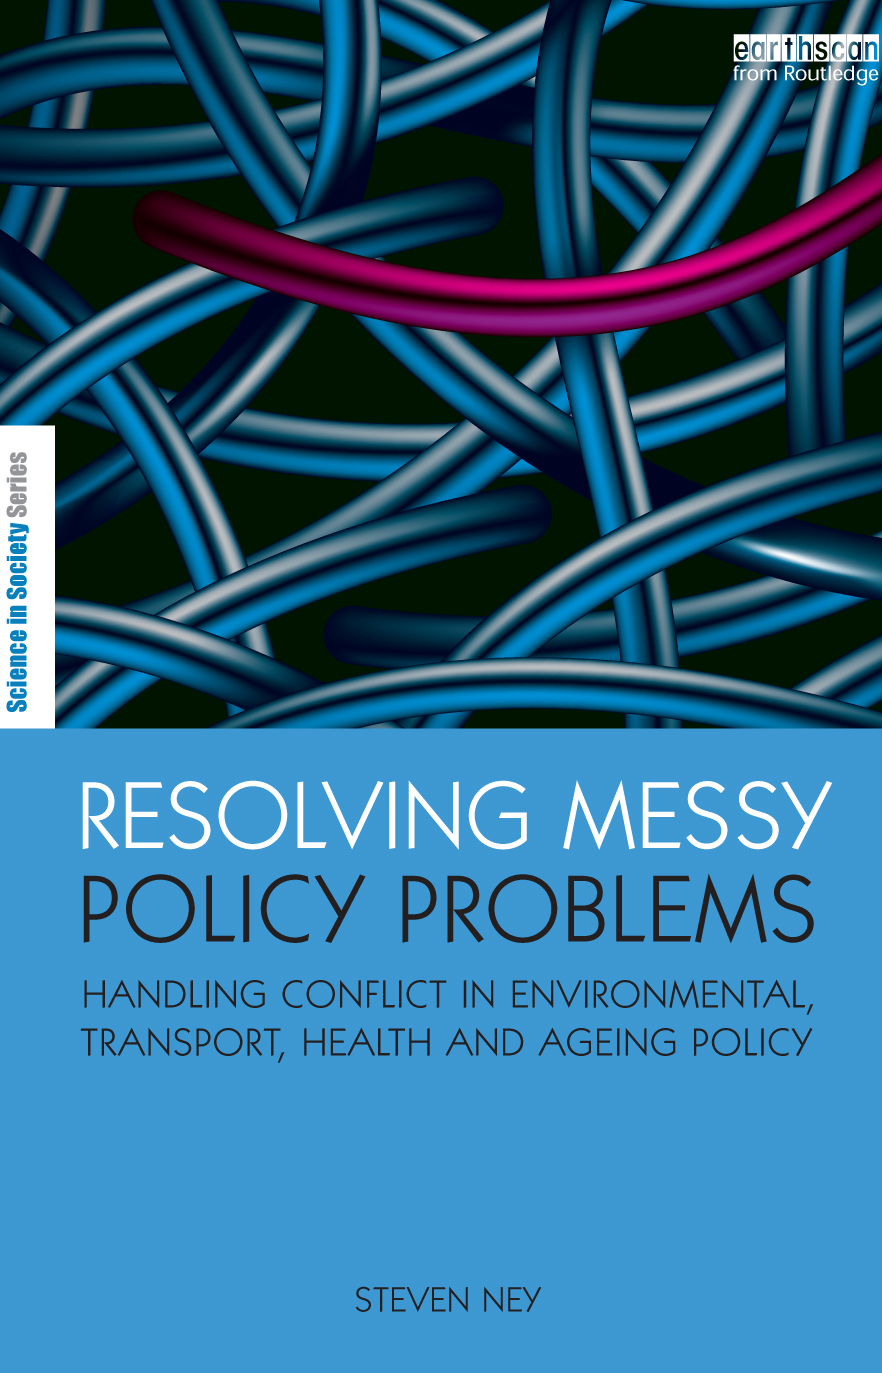 Resolving Messy Policy Problems Handling Conflict in Environmental,  Transport,  Health and Ageing Policy